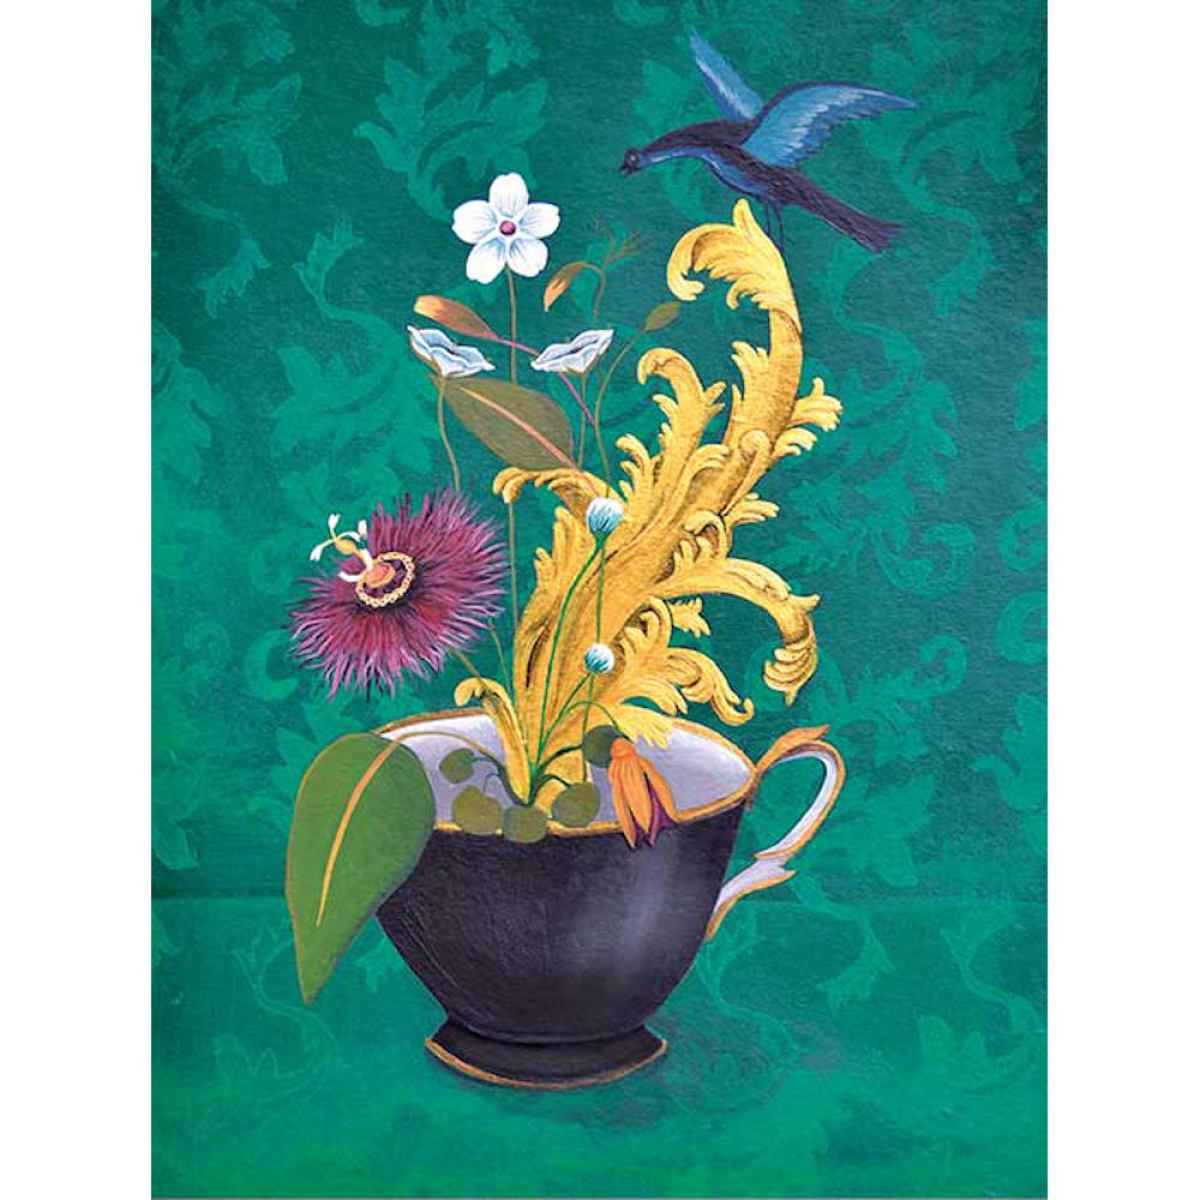 Art Print with Flower Still Life on Non-Woven Paper